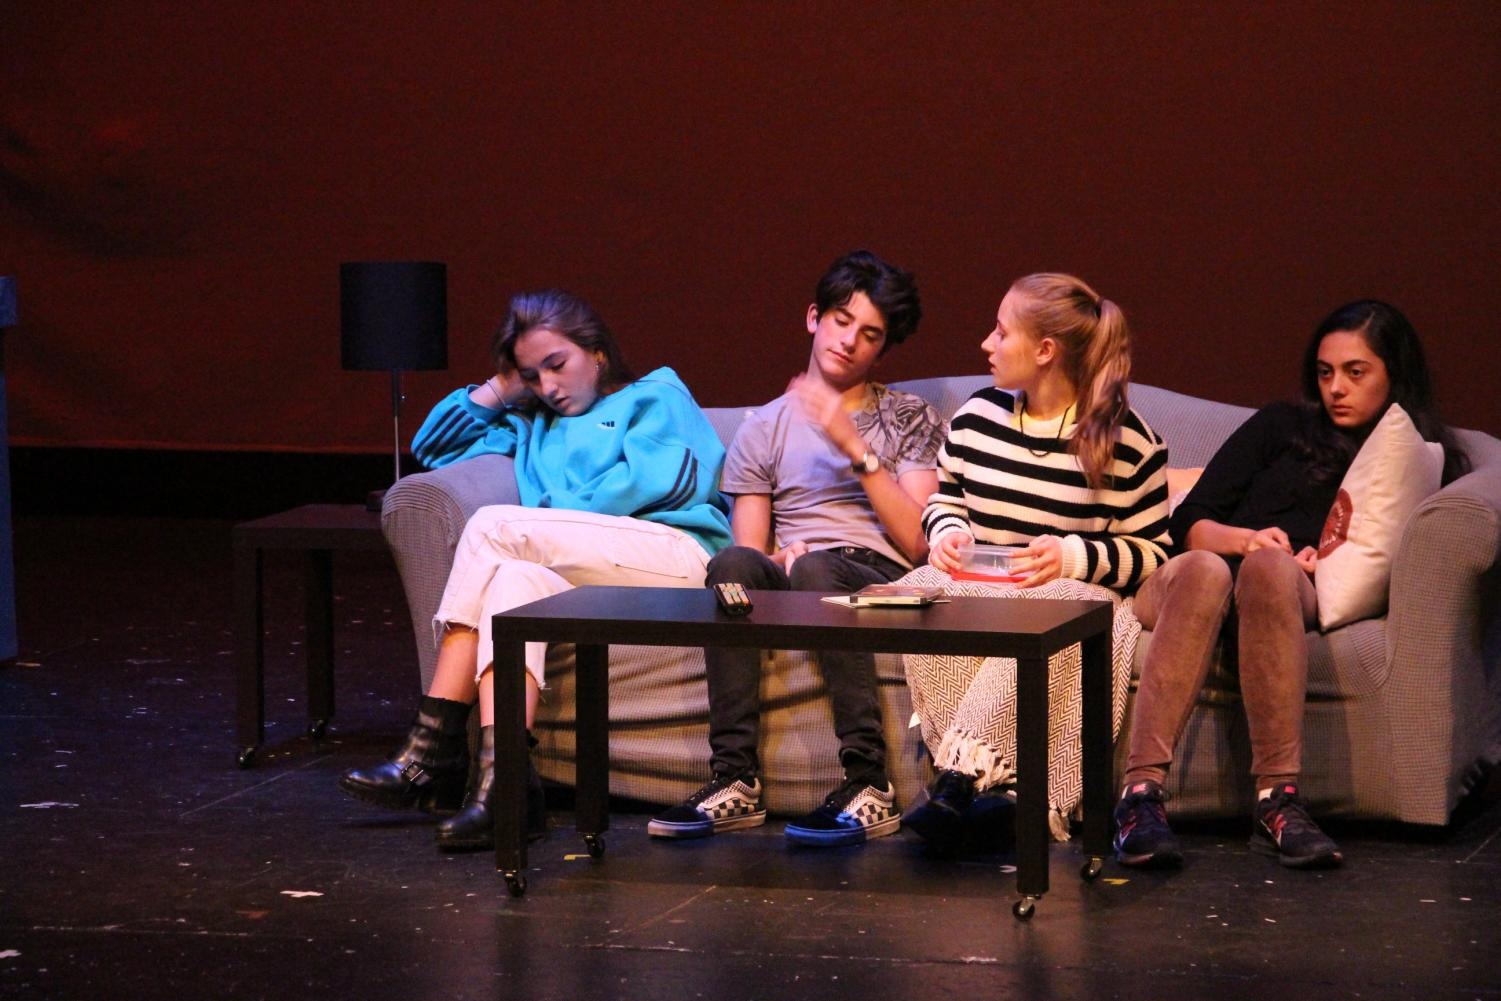 Sophomores Nina Ryan and Neo Watsin and freshmen Sophia Cimmino and Samantha Rodino rehearse for their upcoming play